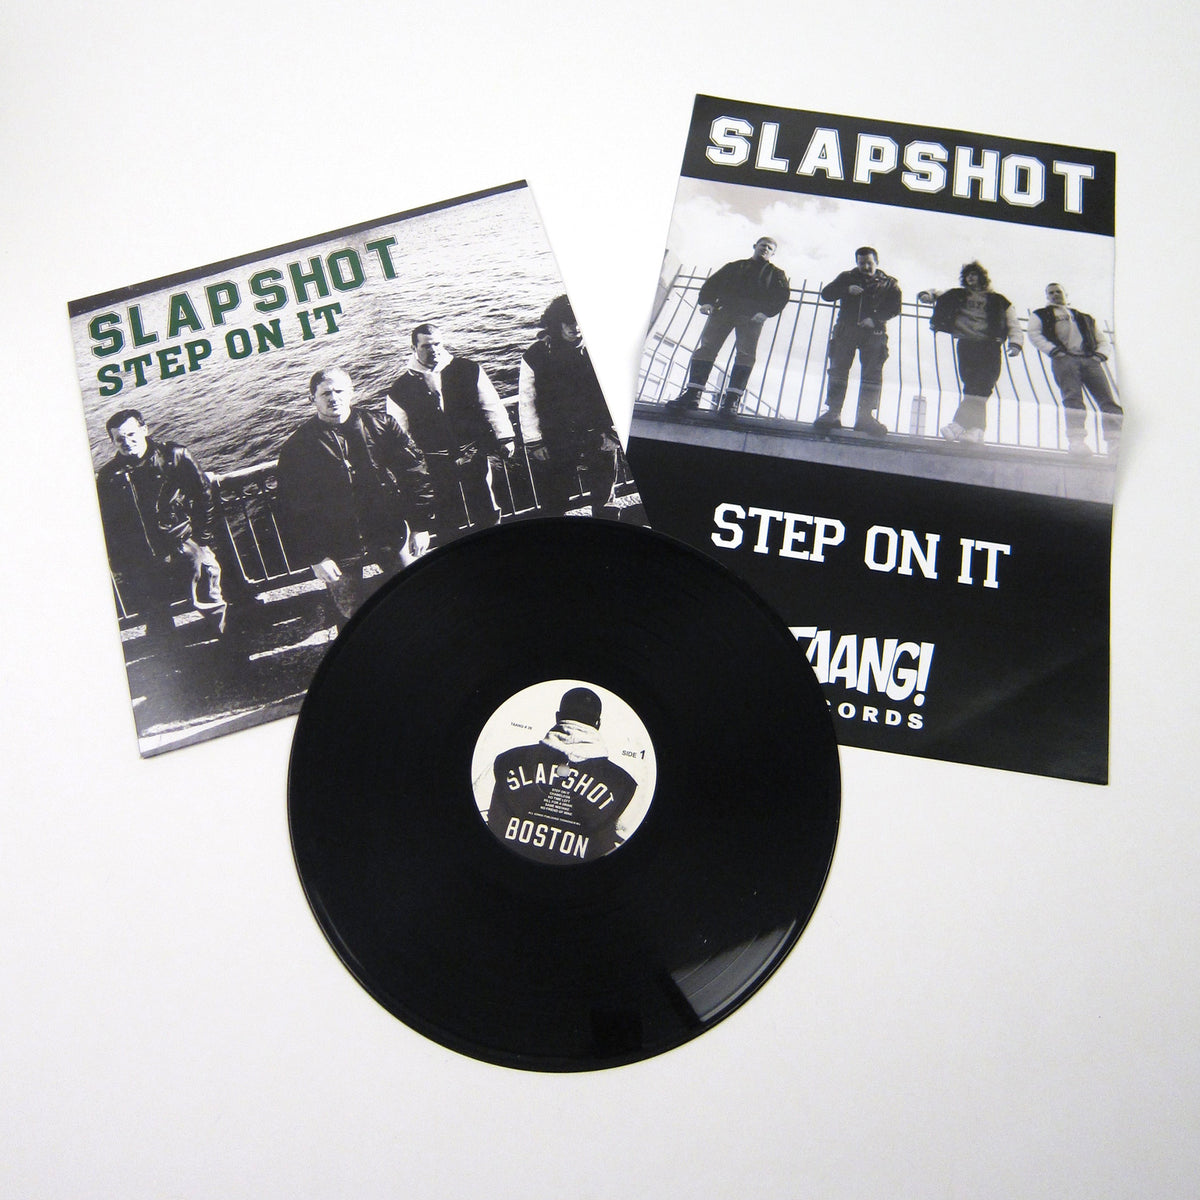 Slapshot: Step On It Vinyl LP